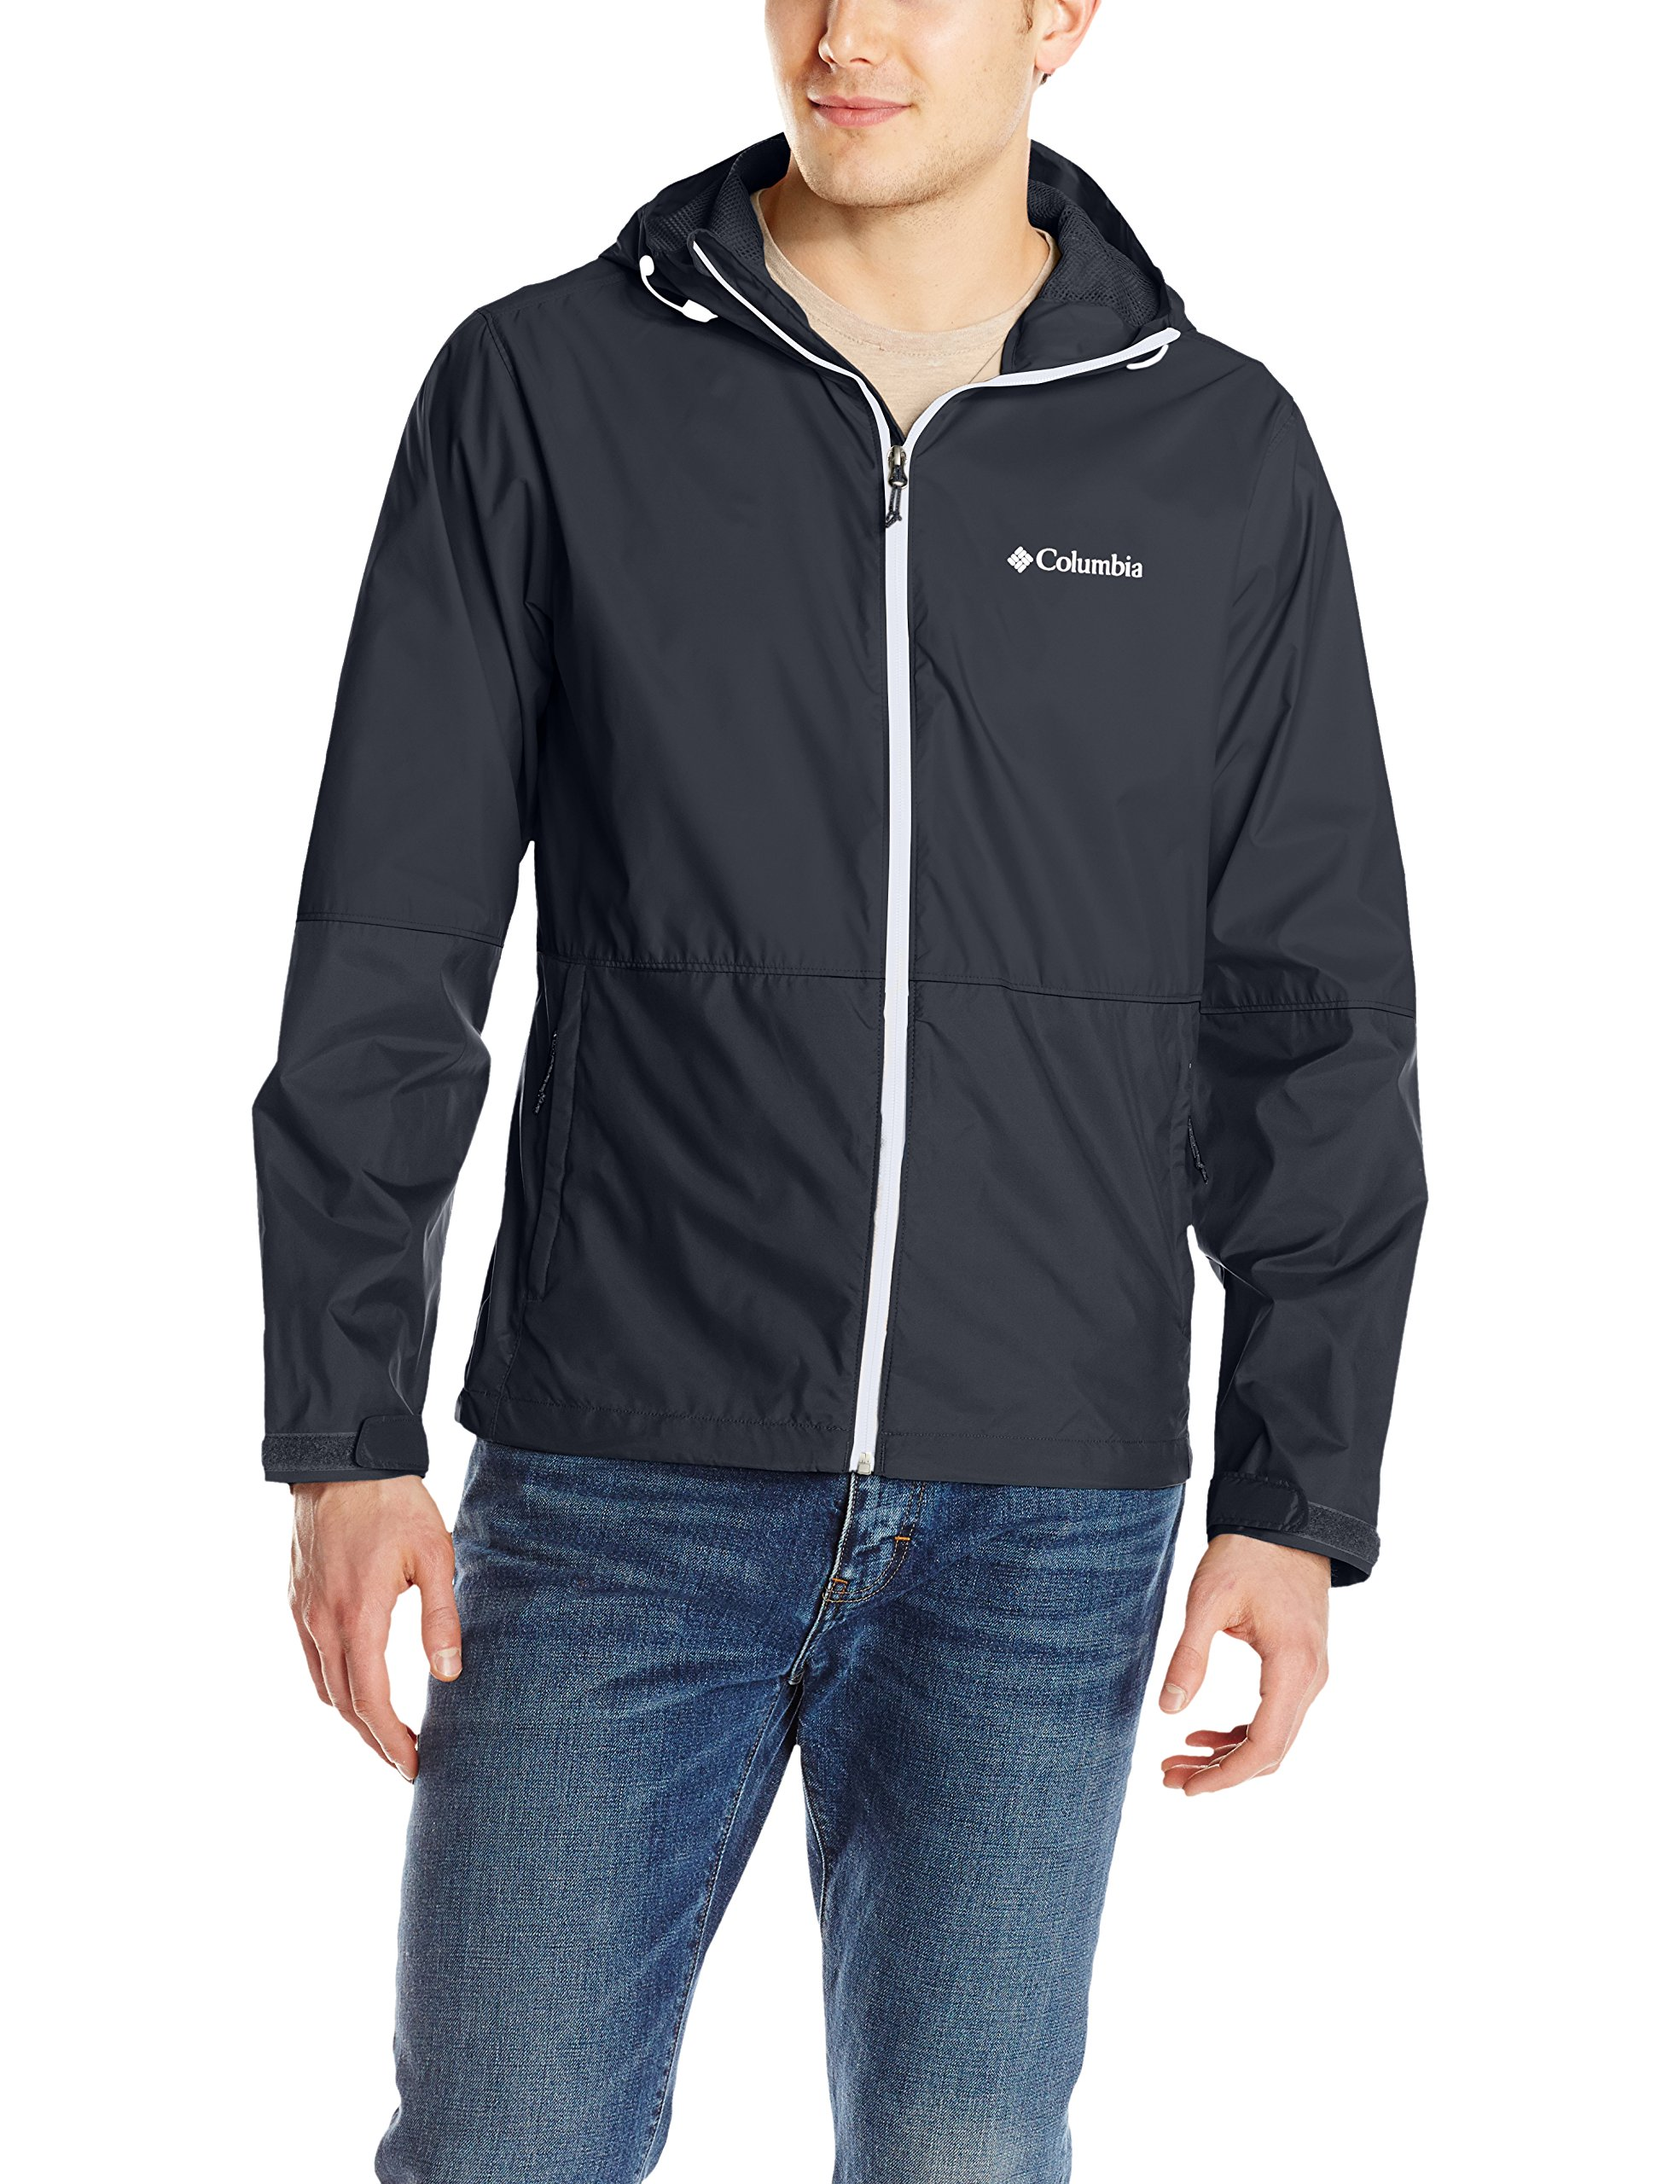 Columbia Men's Roan Mountain Jacket, Black/White, Medium by Columbia